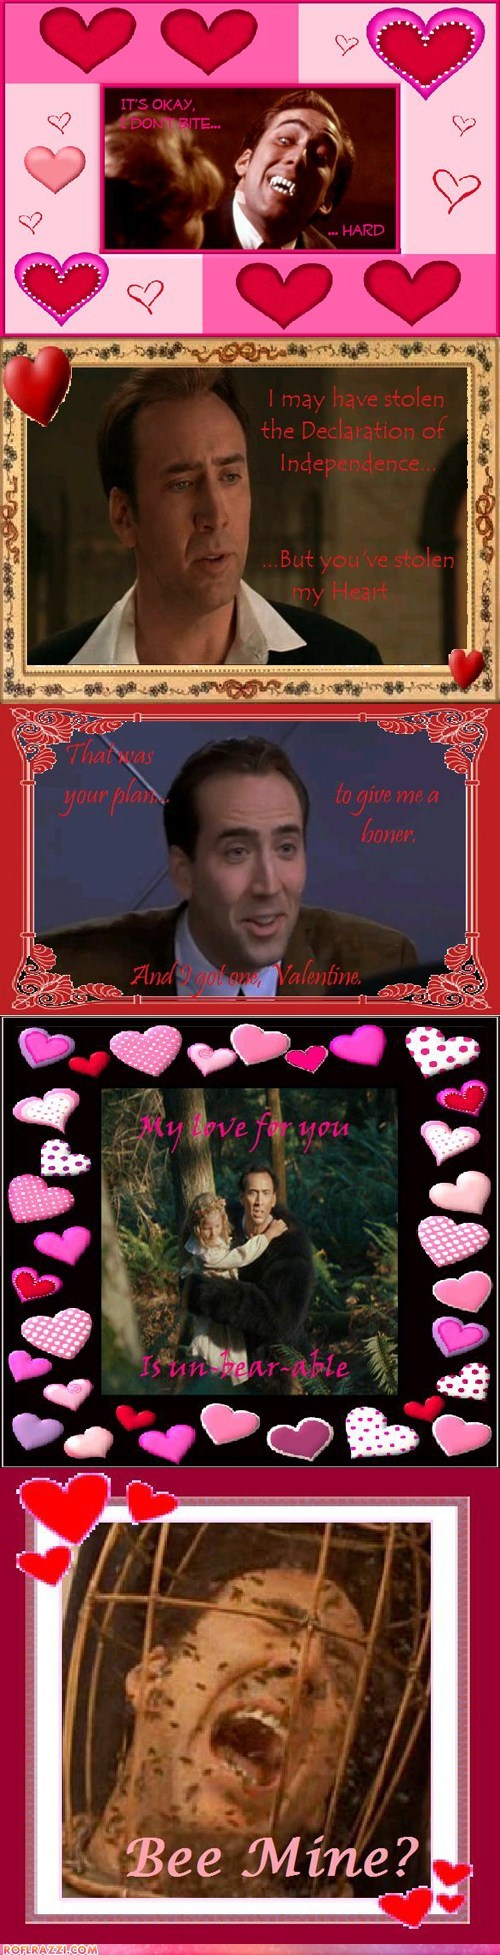 funny holiday nicolas cage shoop Valentines day - 5774093568